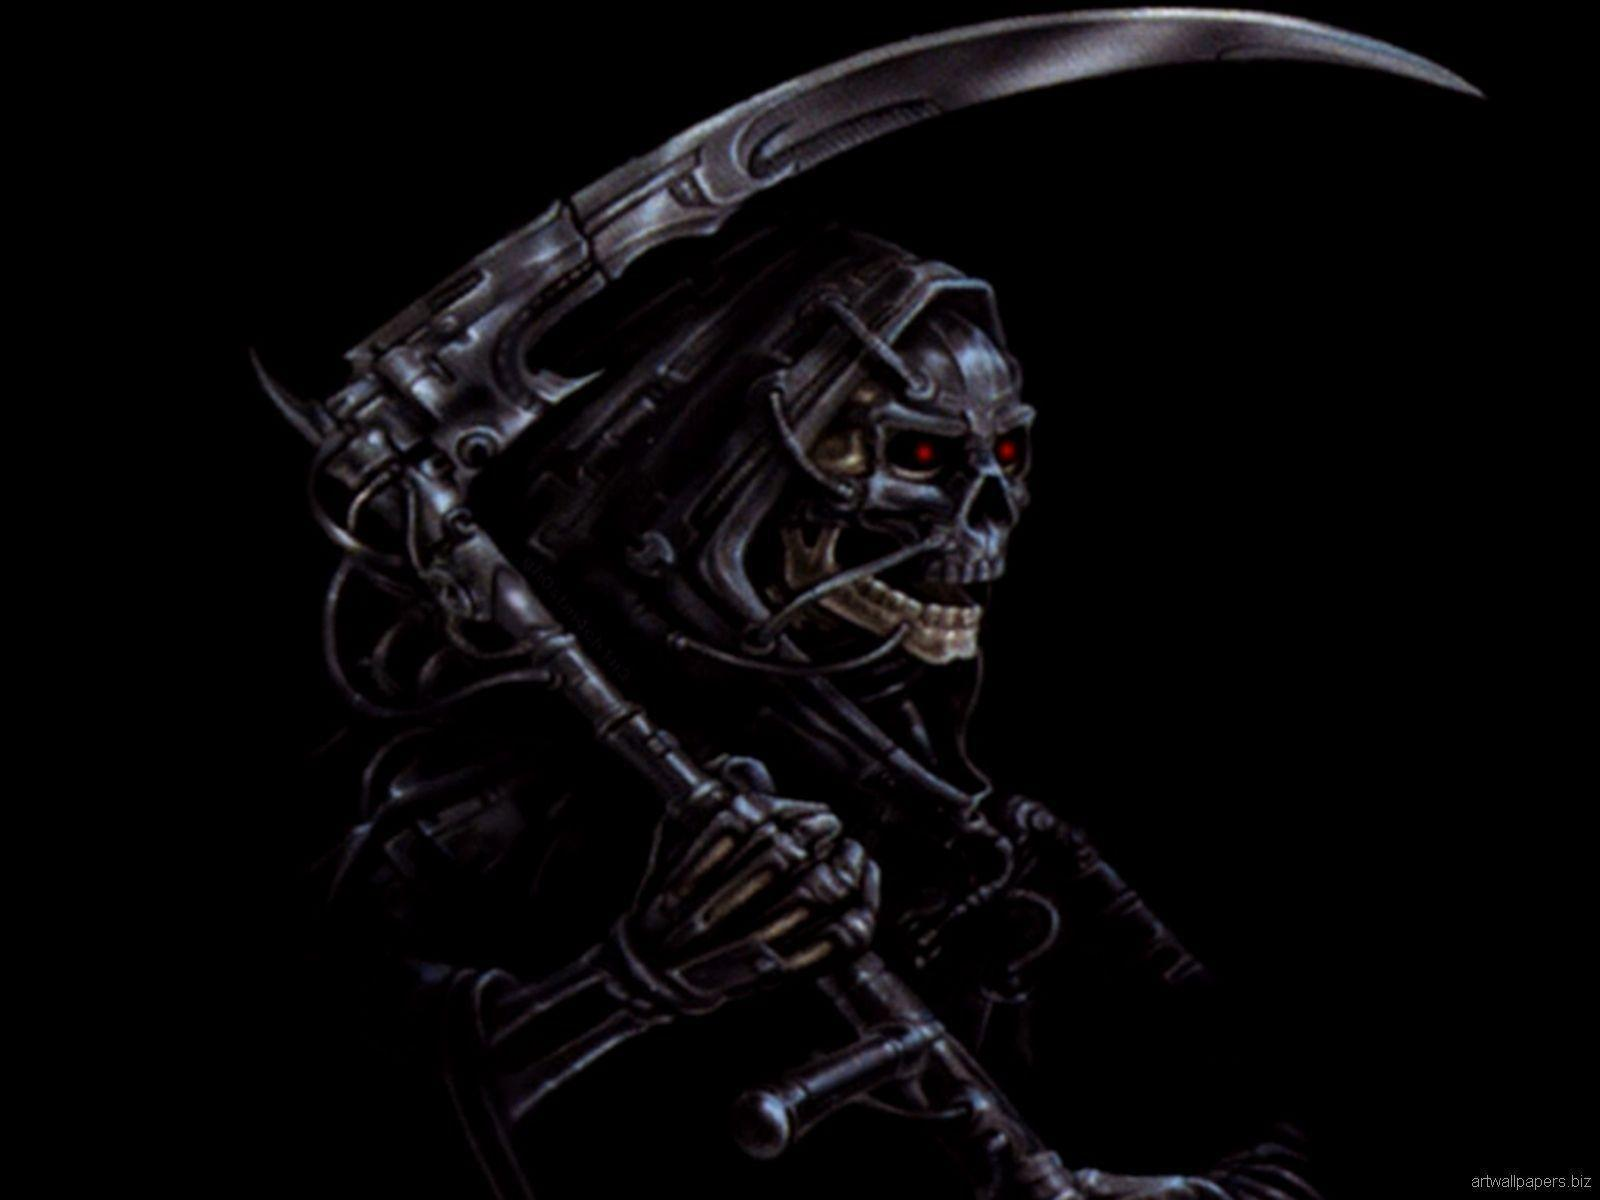 Awesome Skull Wallpapers Wallpapers Browse: Skull Desktop Wallpapers